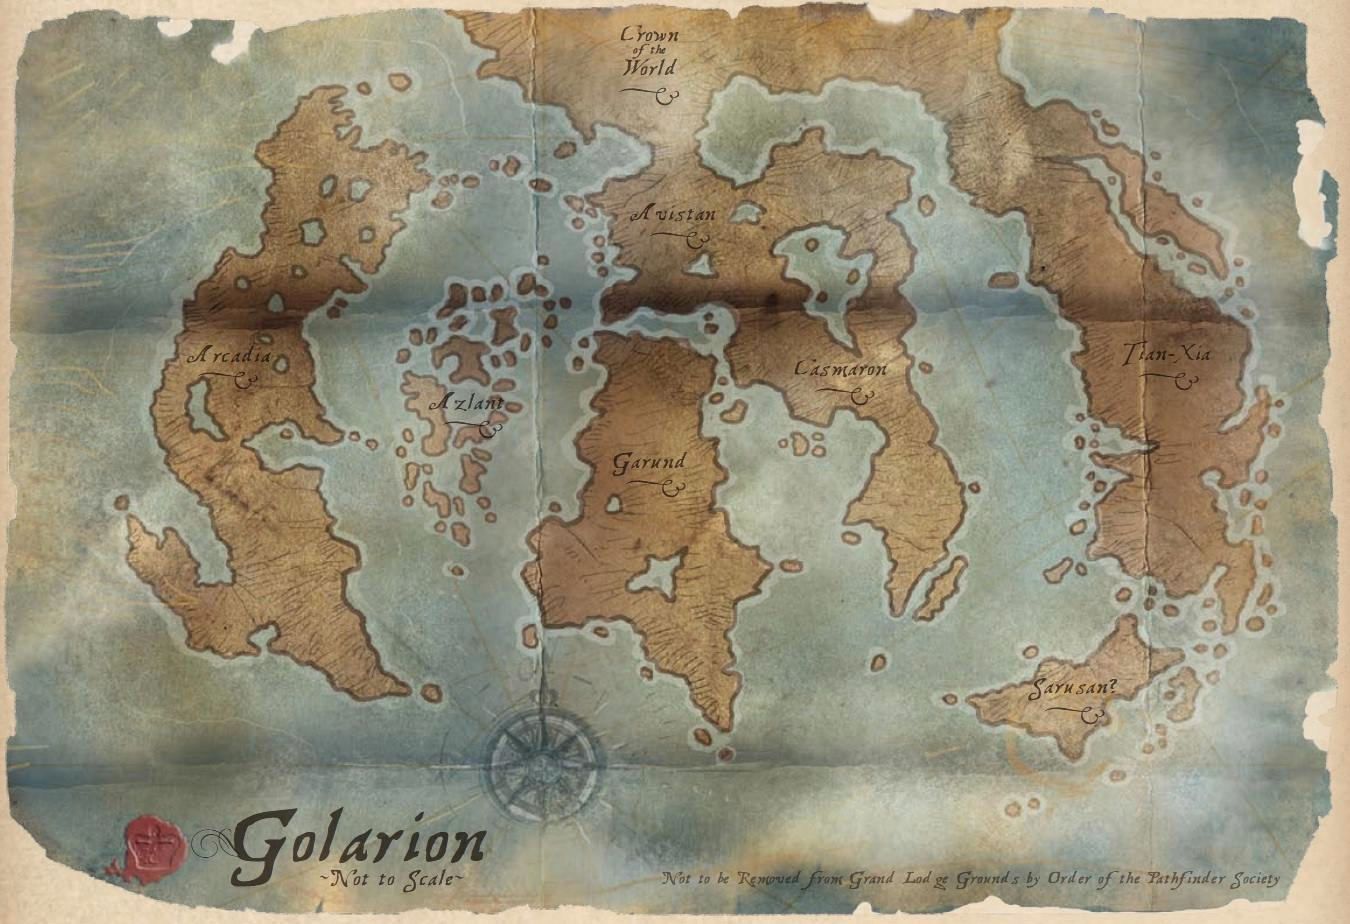 map_golarion_large.png